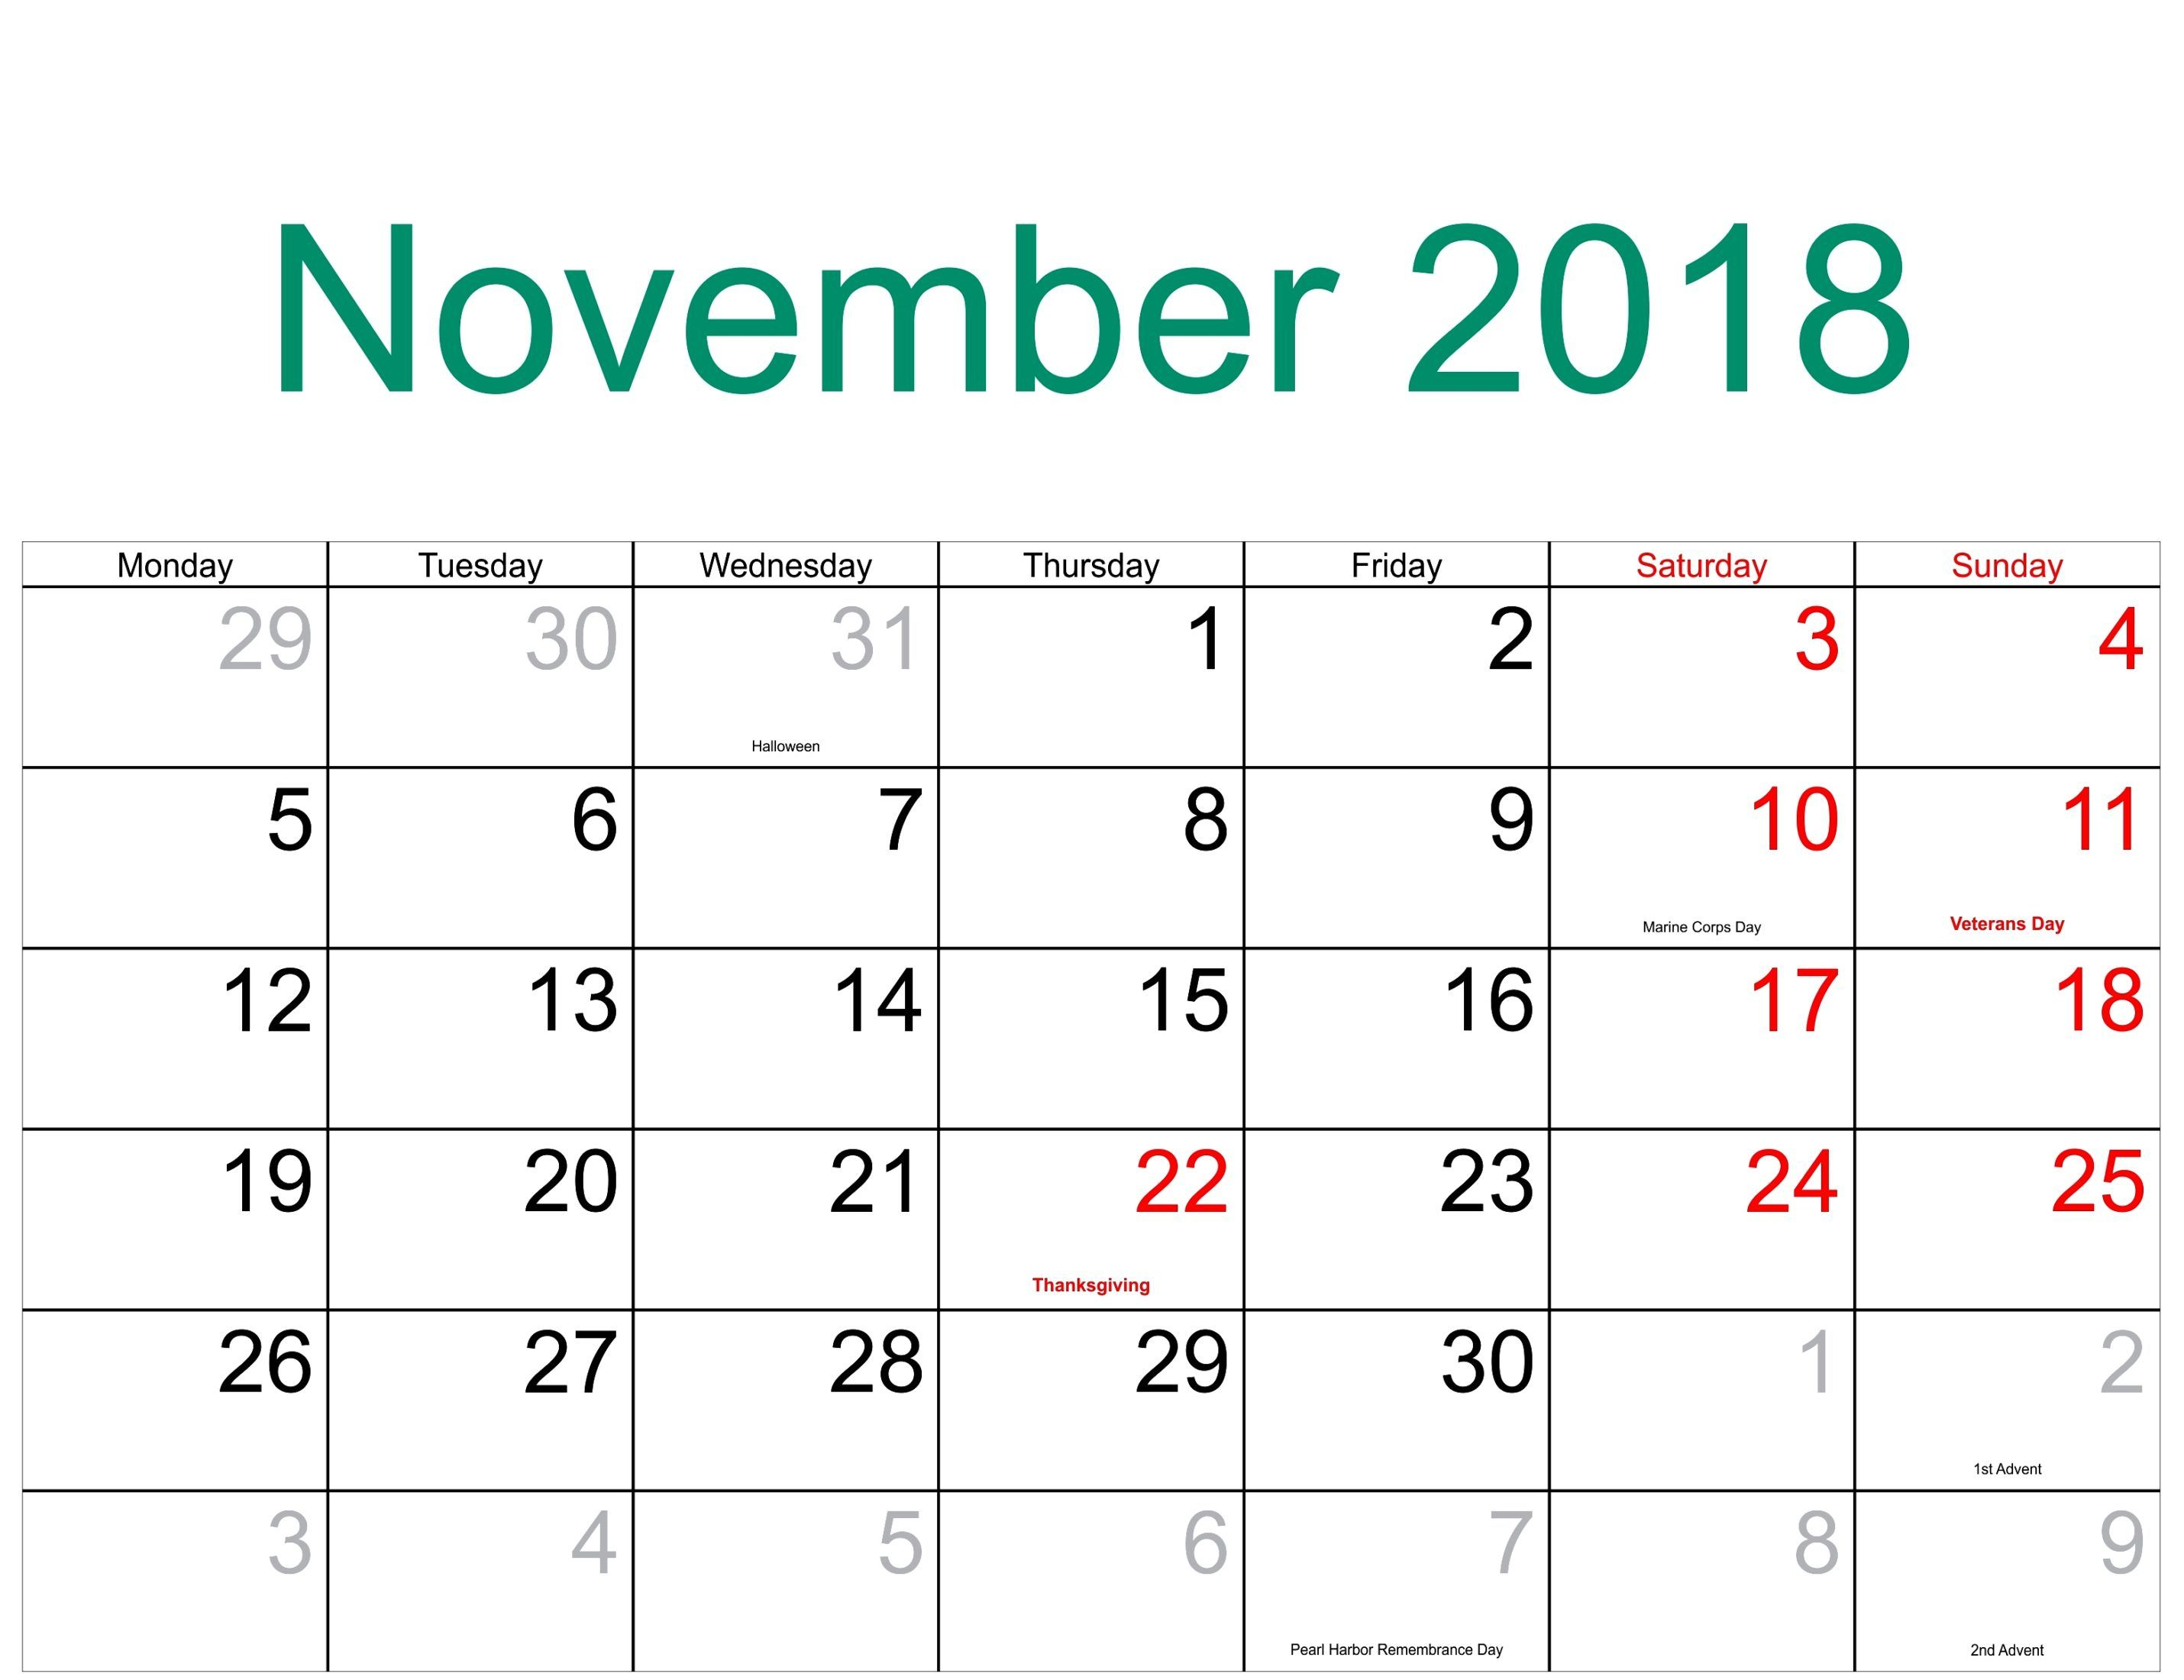 Calendar Holidays.November Calendar With Holidays Lorey Toeriverstorytelling Org